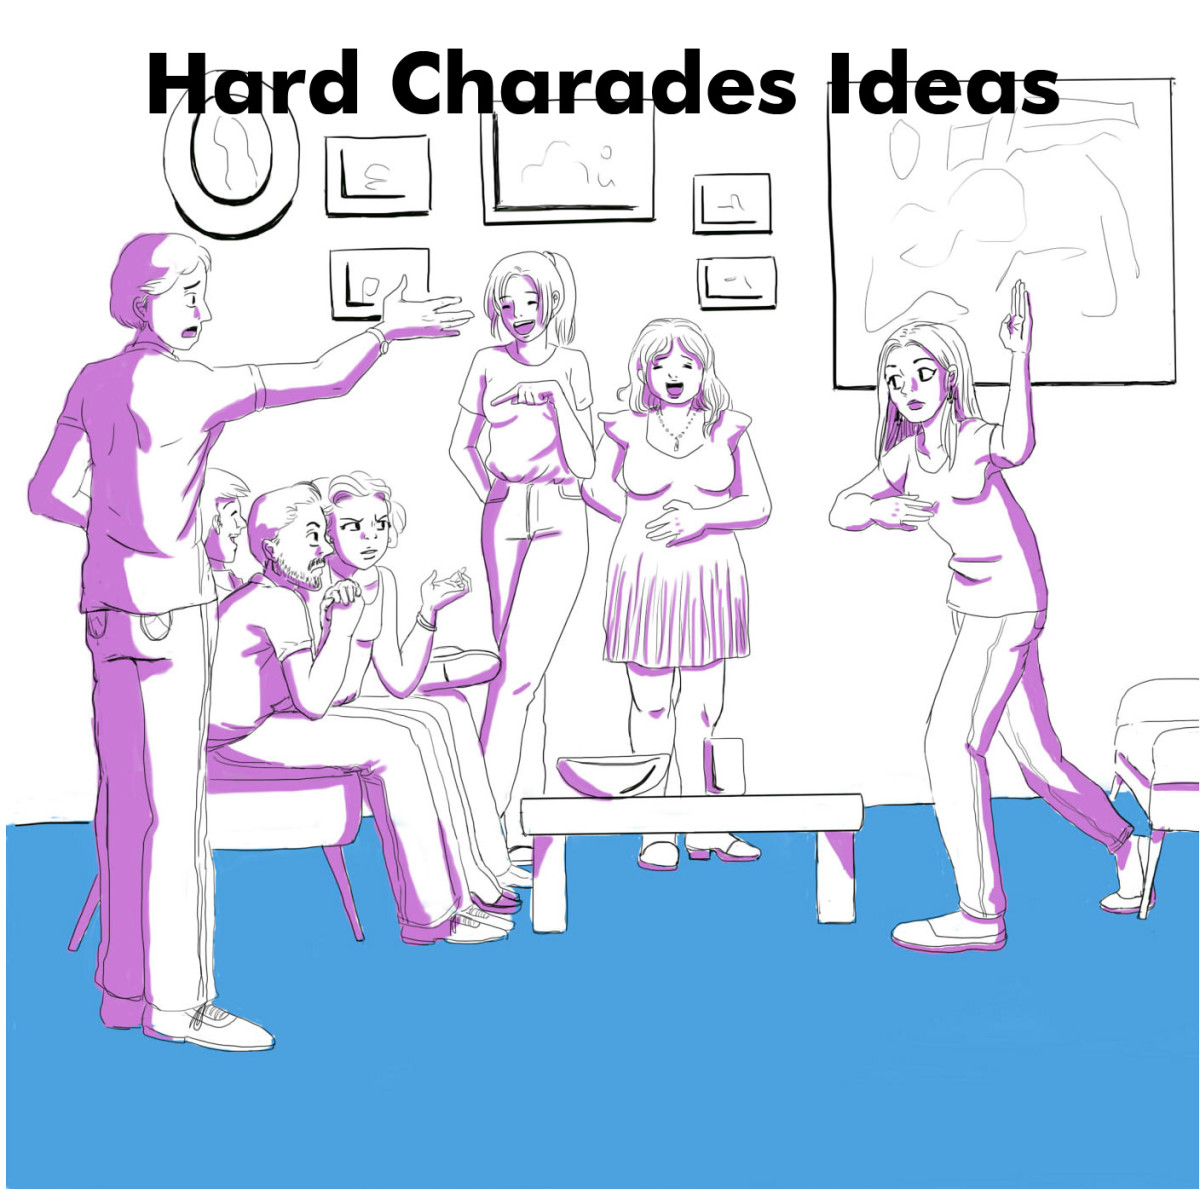 Hard Charades Ideas: Movies, TV Shows, Books and More